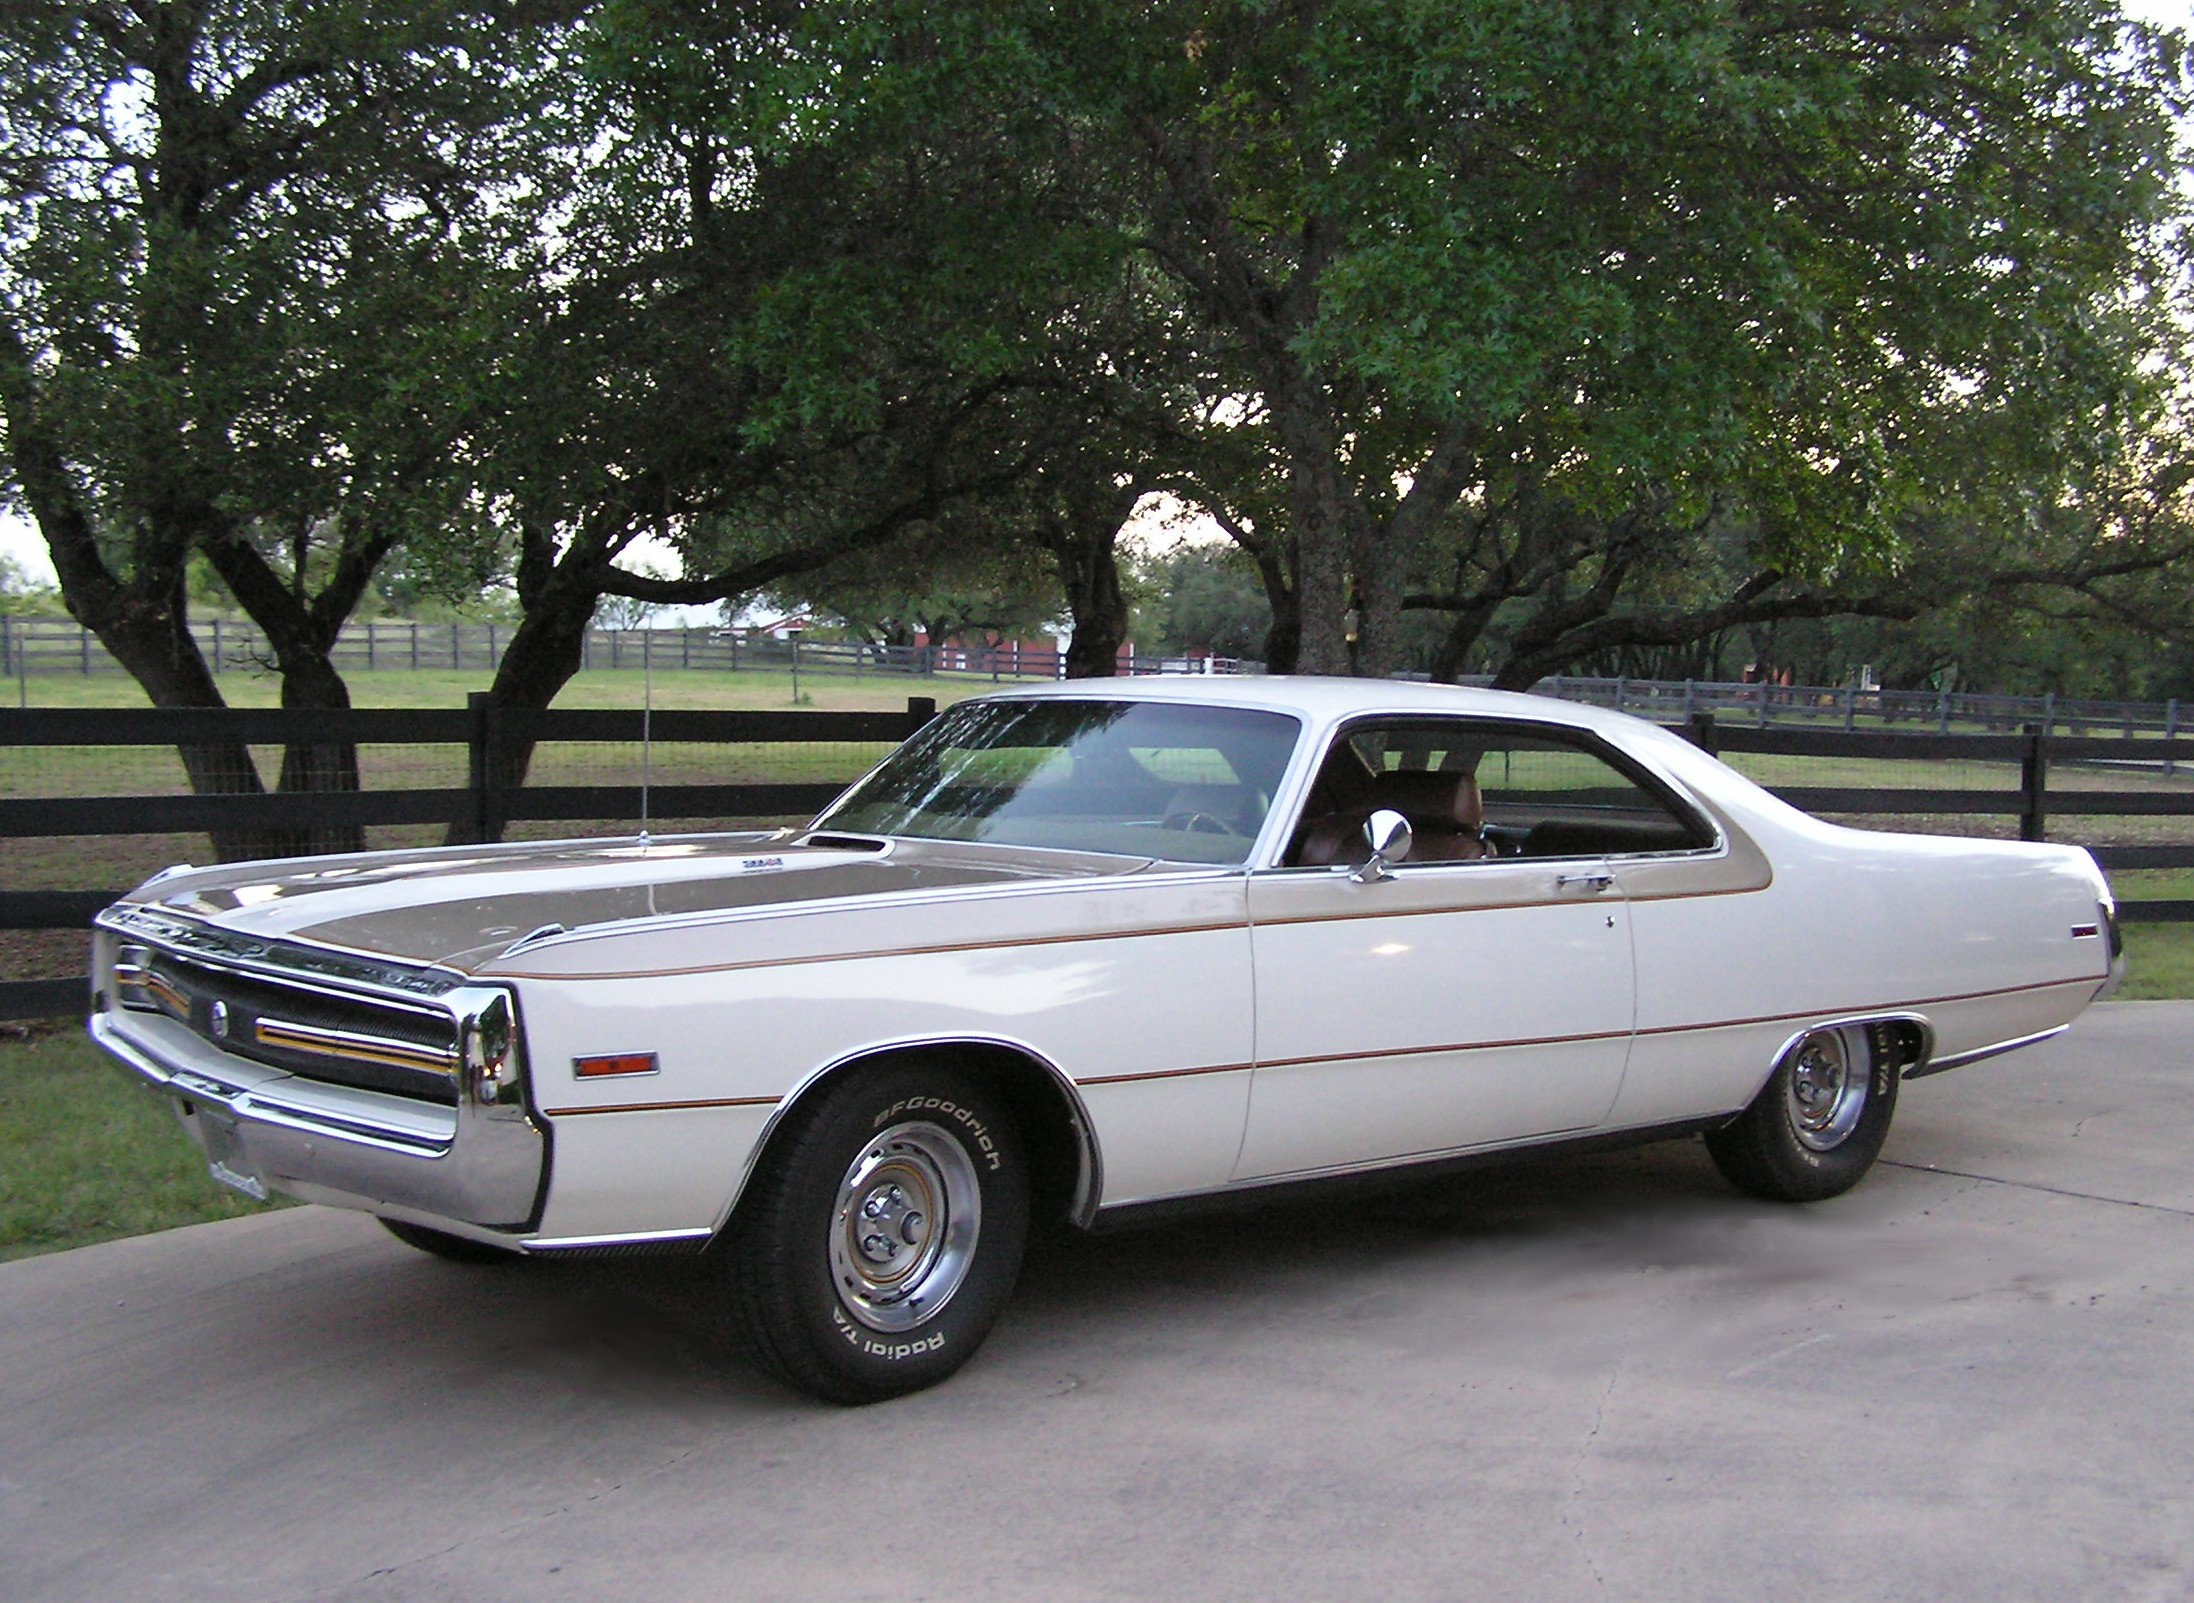 The 1970 Chrysler 300 Hurst